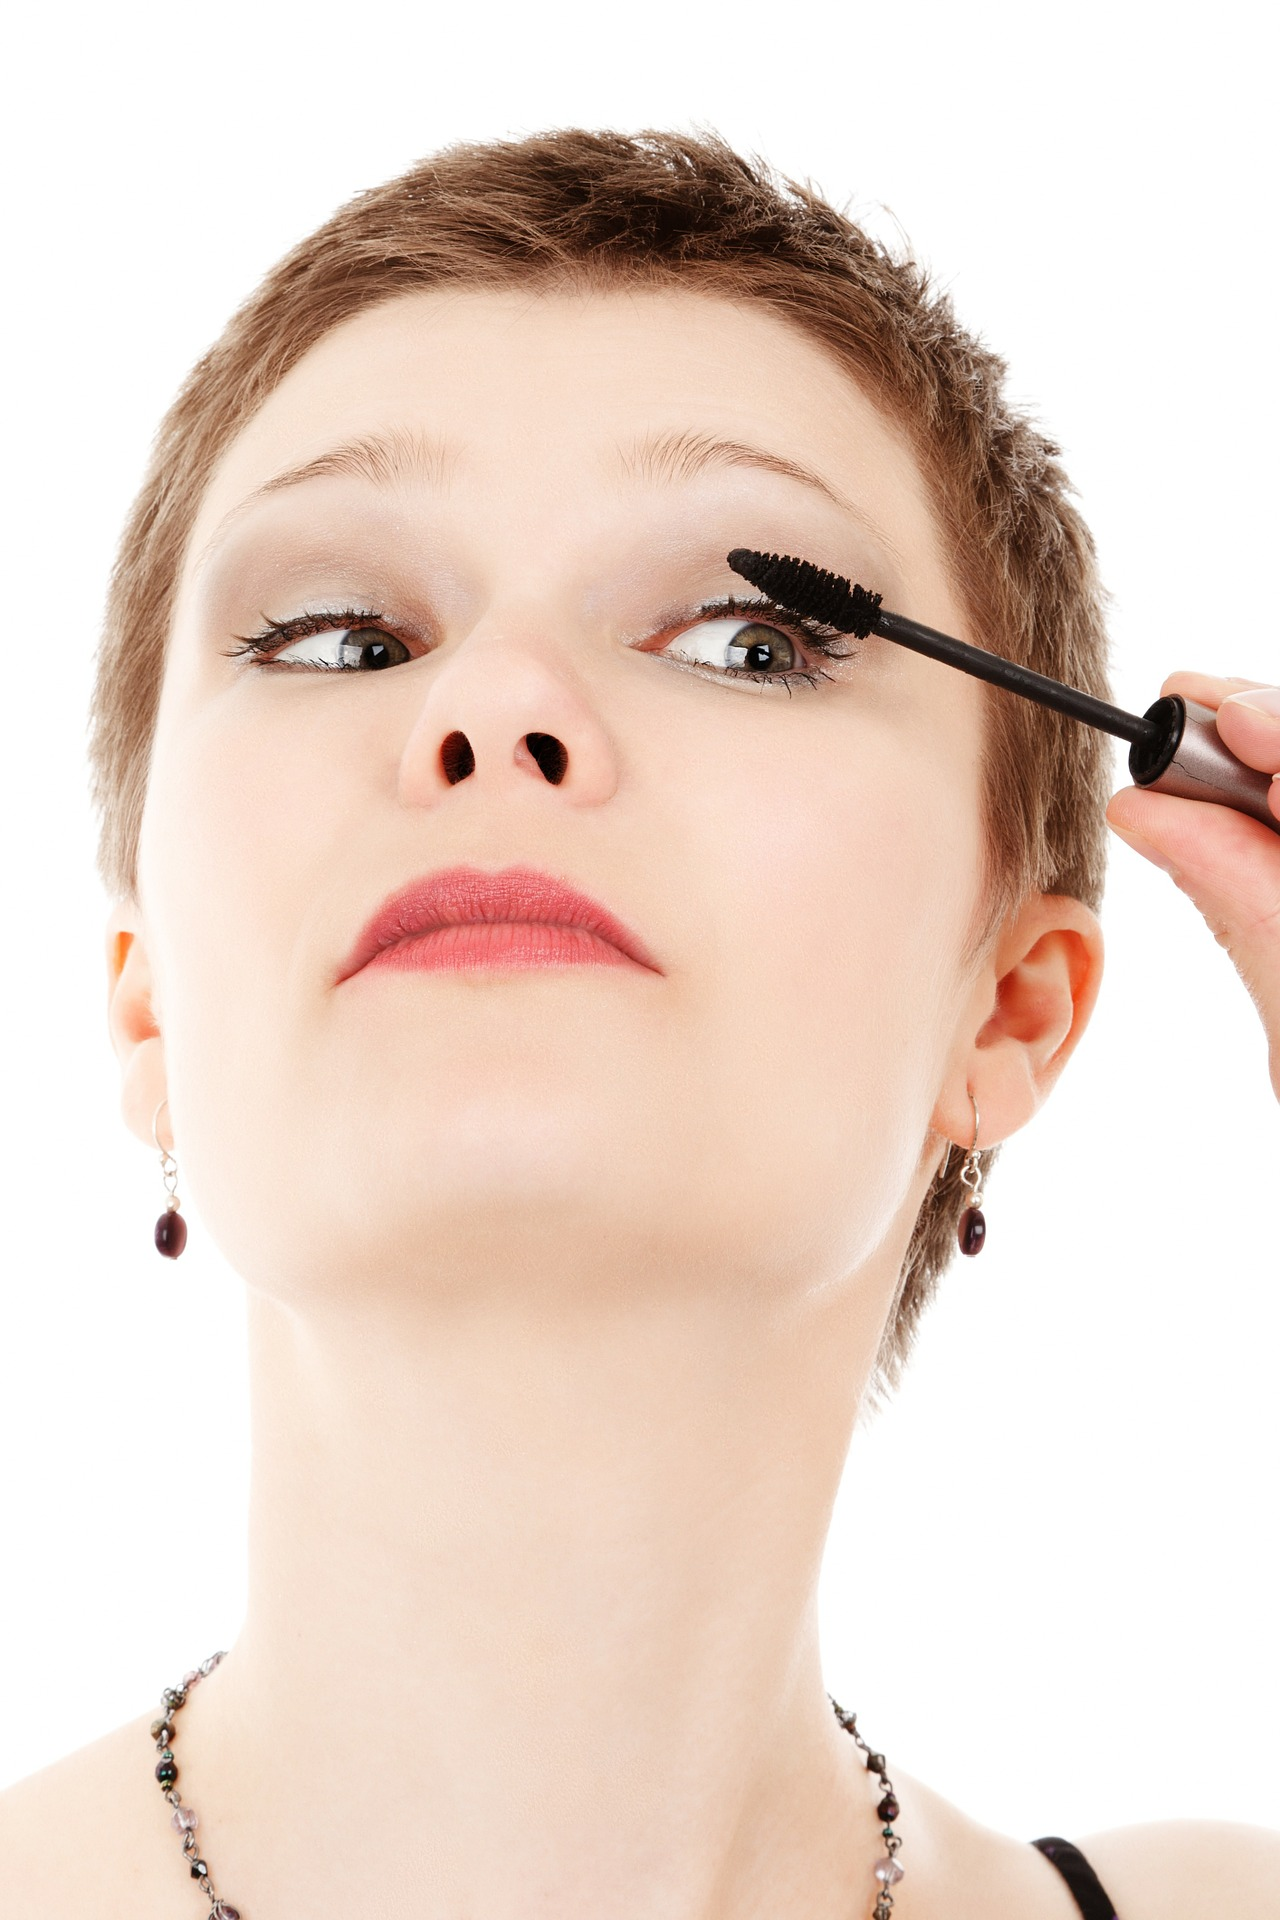 Woman volumizing her eyelash using the mascara she is holding